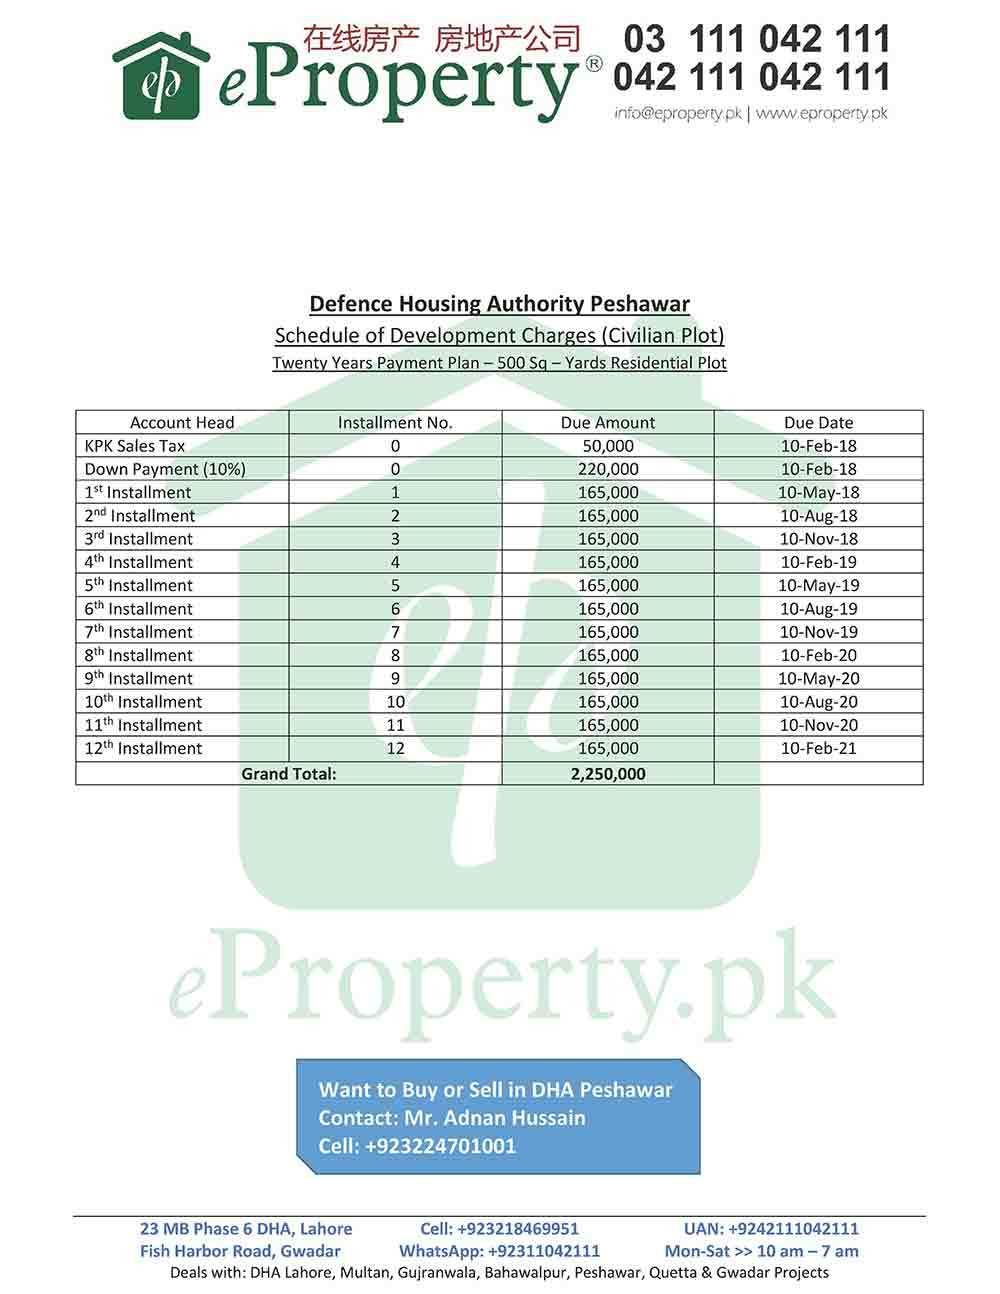 10th schedule deals with